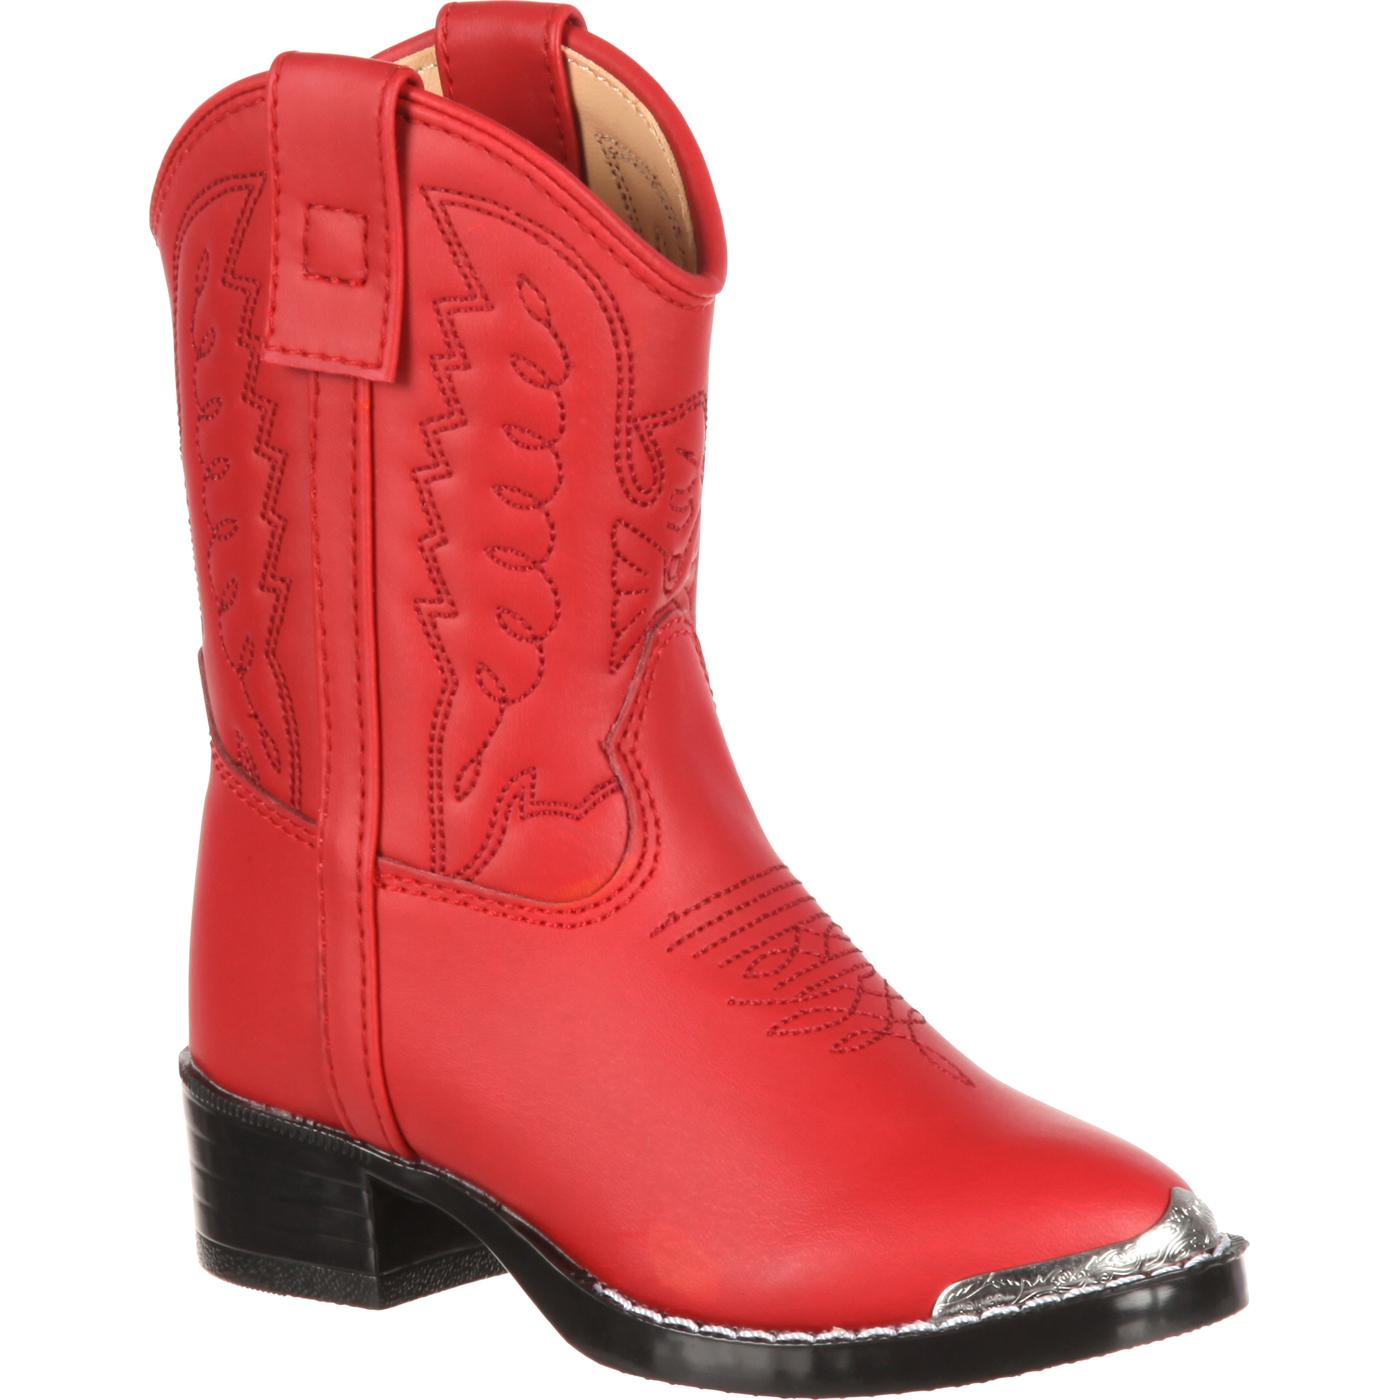 Durango Toddler Red Western Boot - Style #BT755